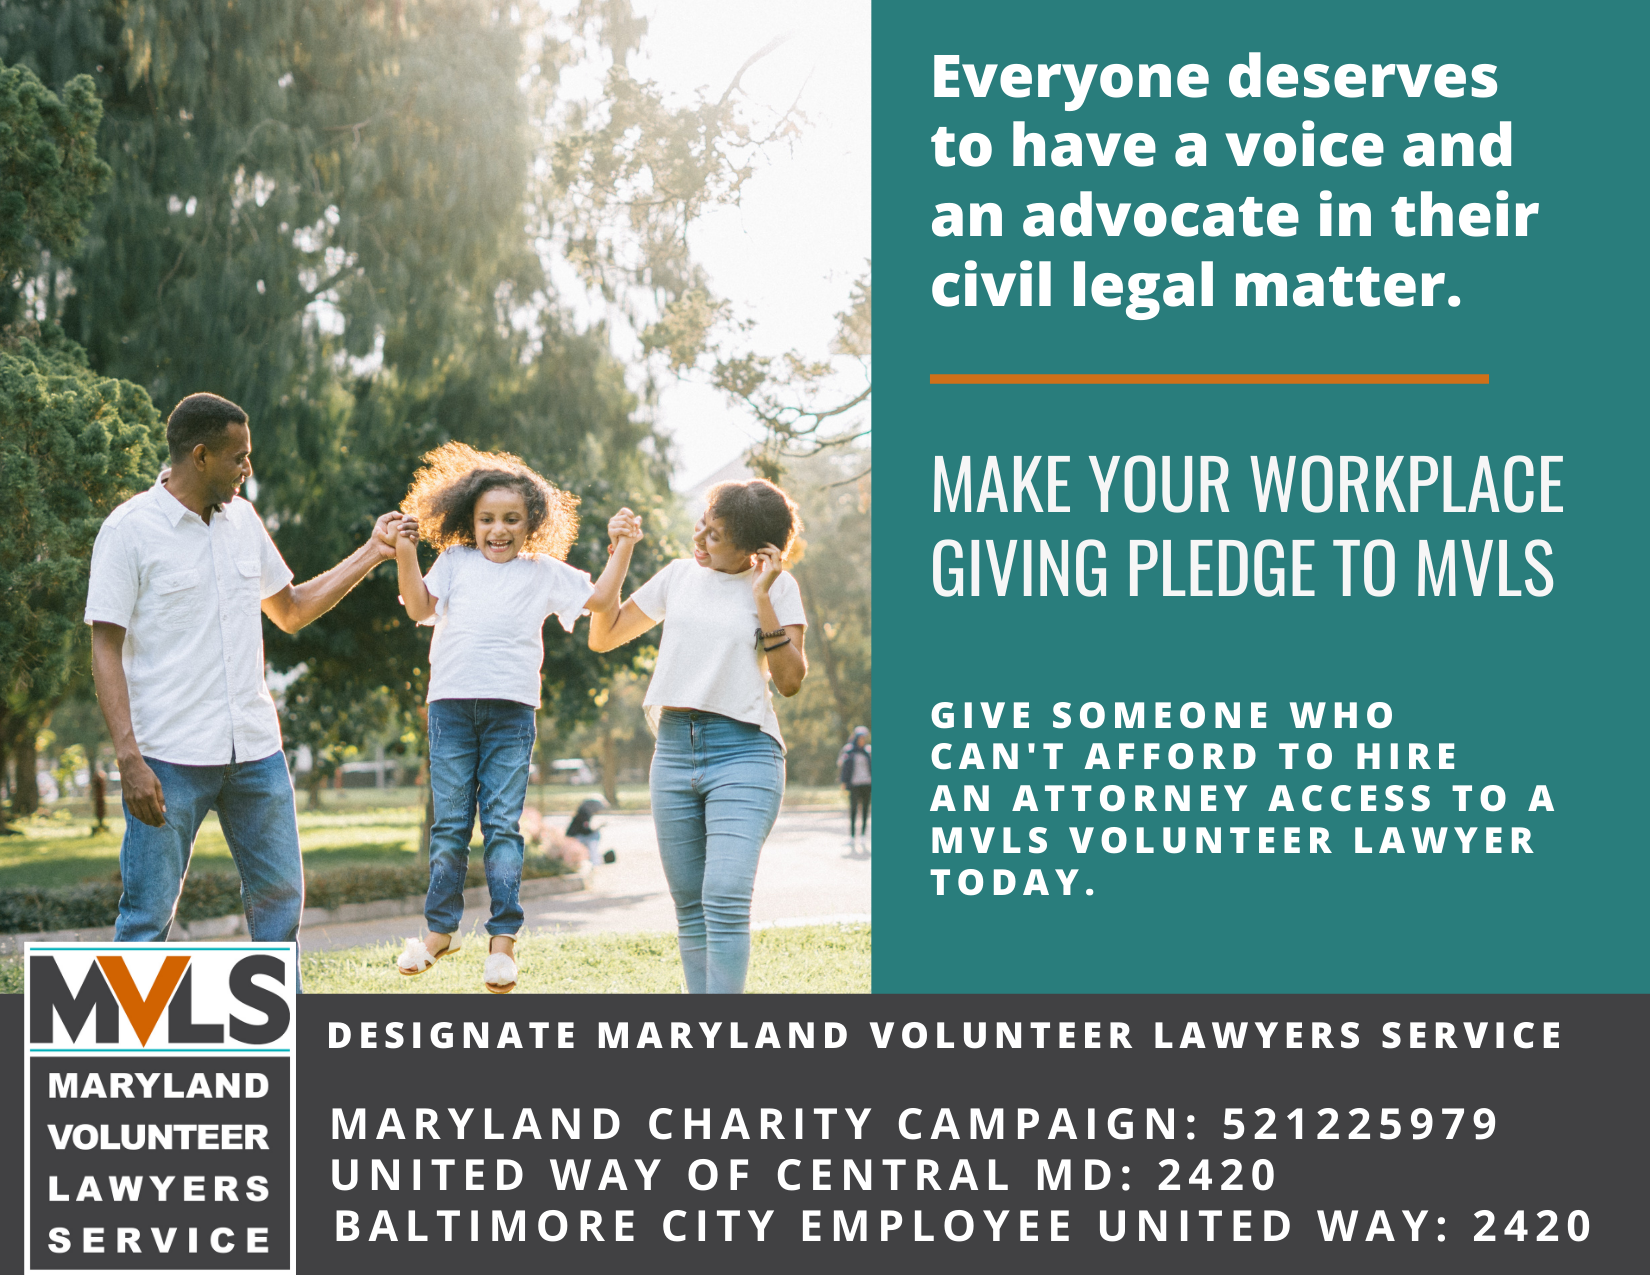 Make your workplace giving pledge to MVLS